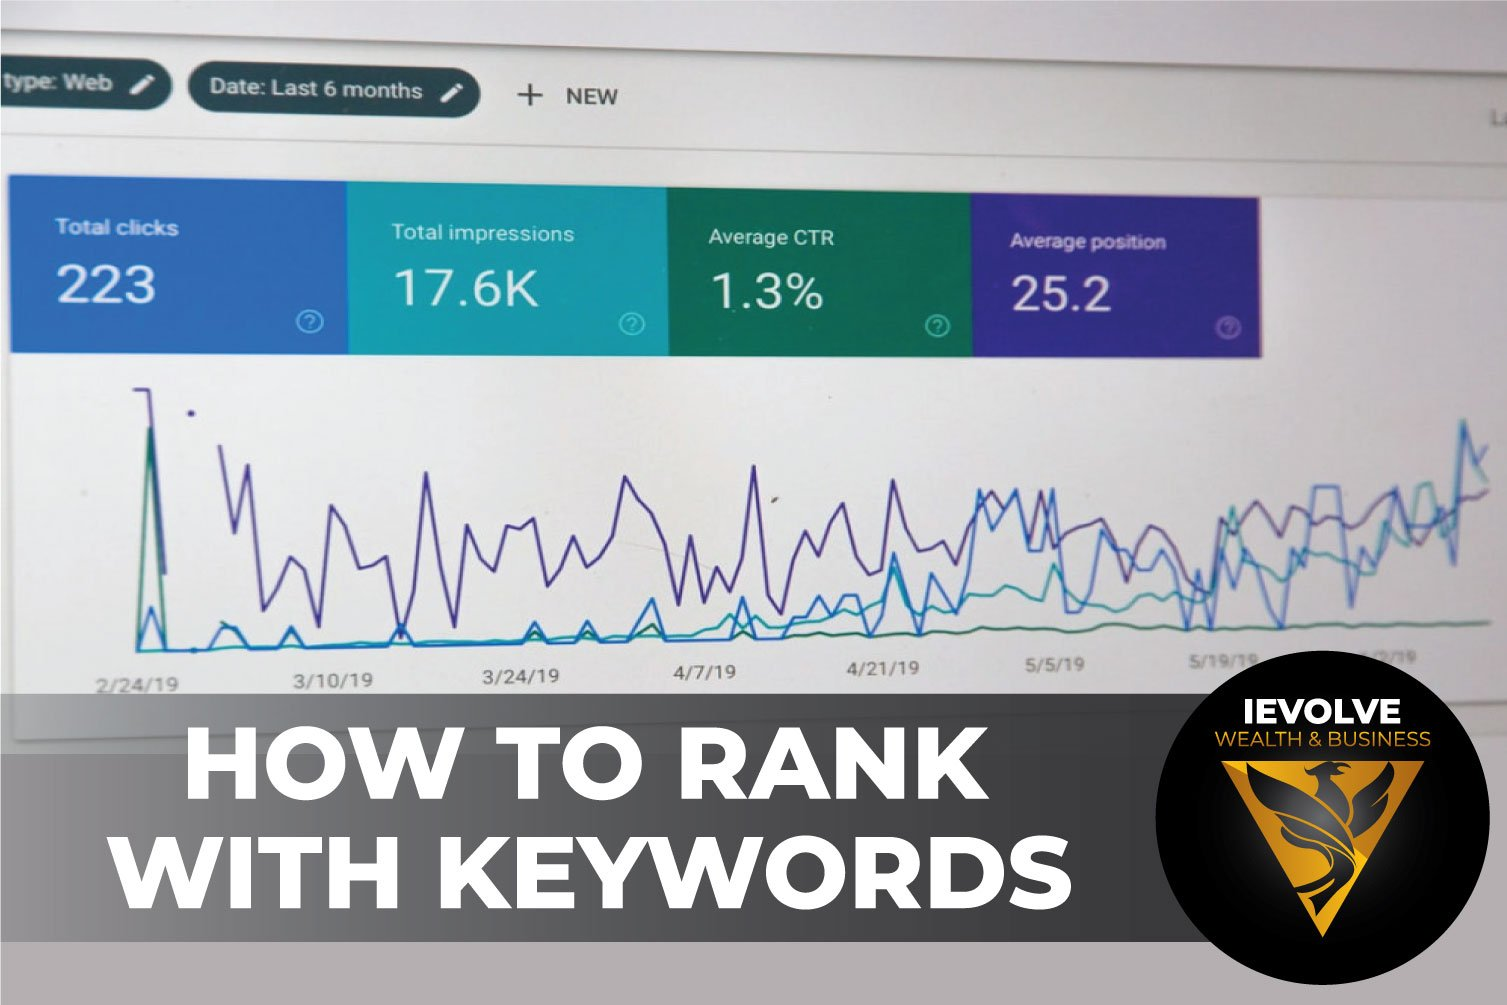 How To Rank With Keywords